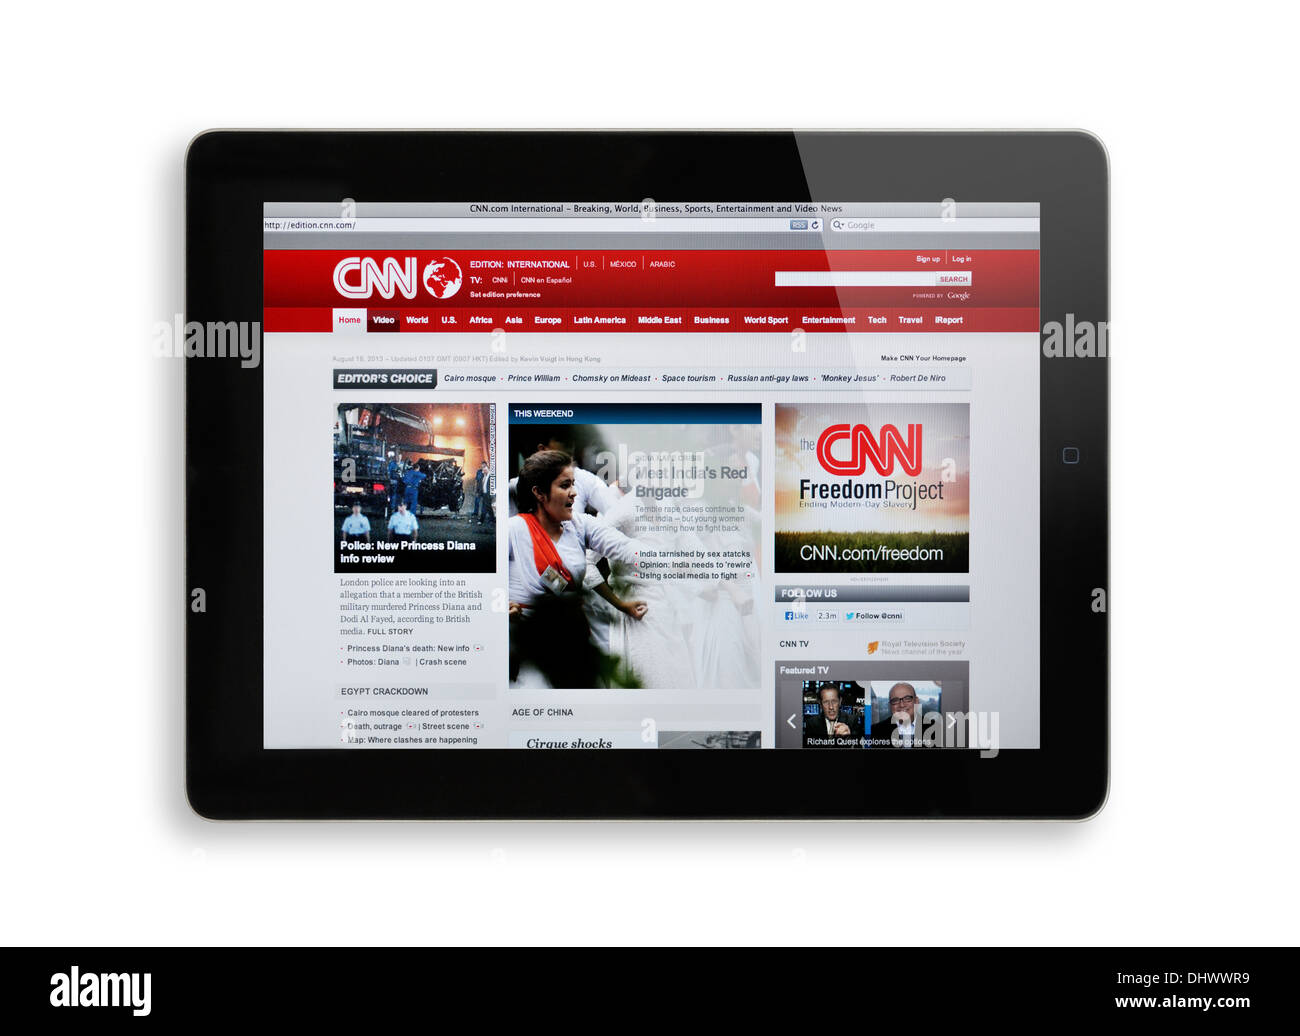 CNN website on iPad screen - Stock Image